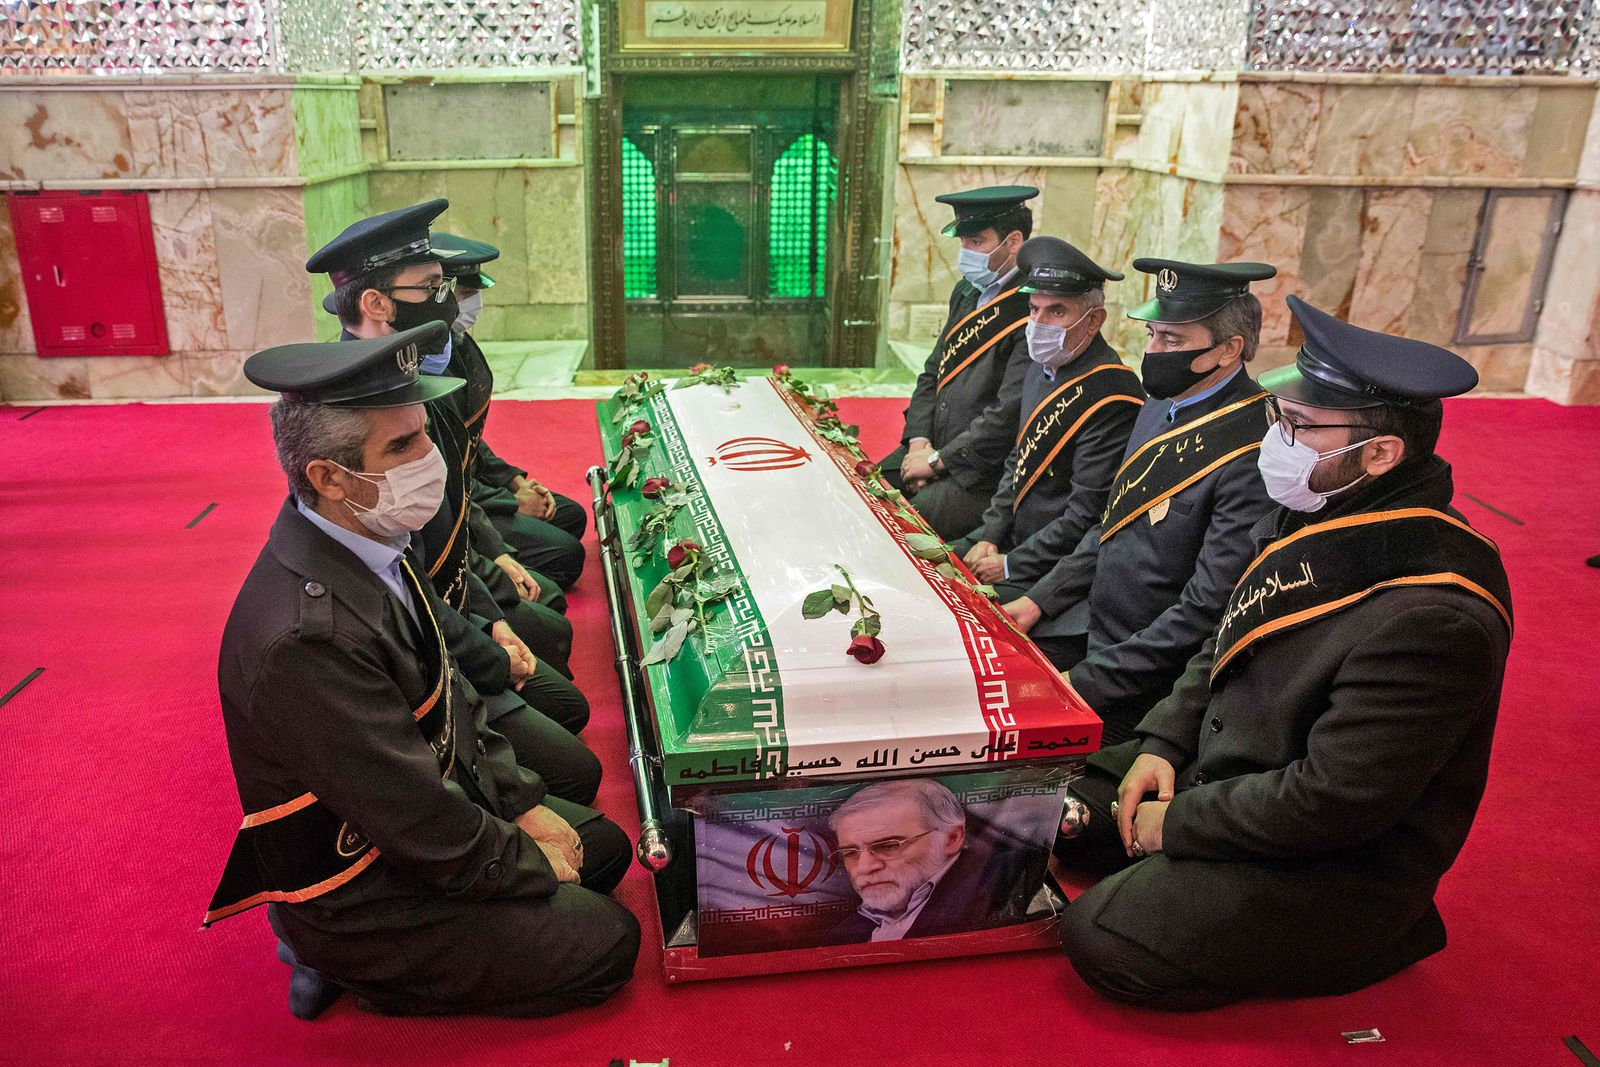 TOPSHOT-IRAN-NUCLEAR-ATTACK-FUNERAL